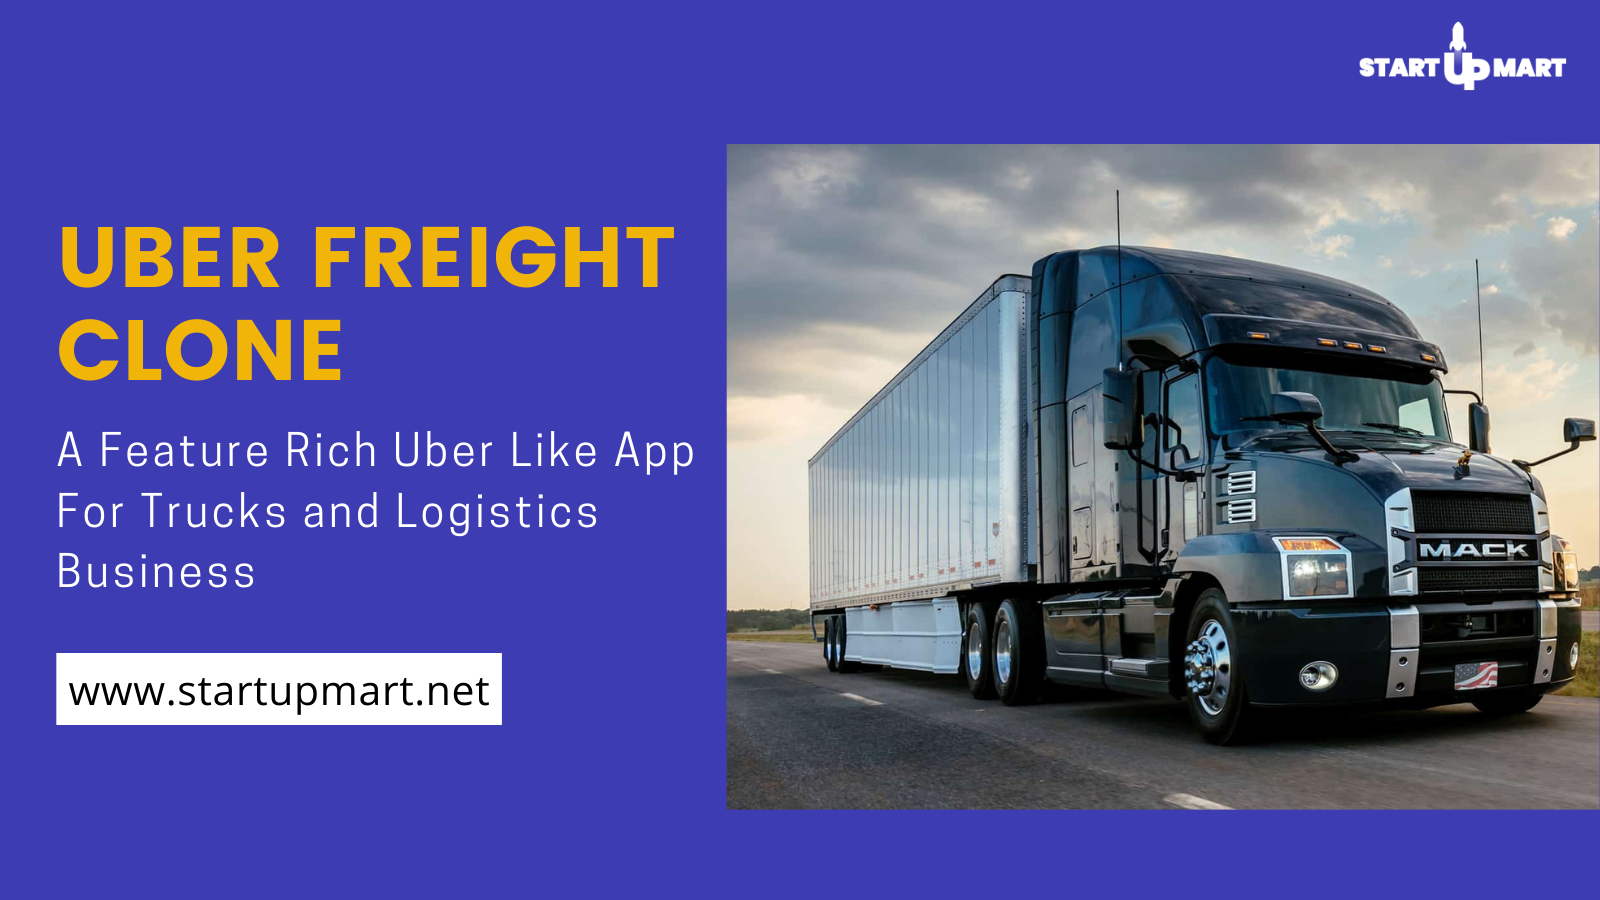 Uber Freight Clone: A Feature Rich Uber Like App For Trucks and Logistics Business